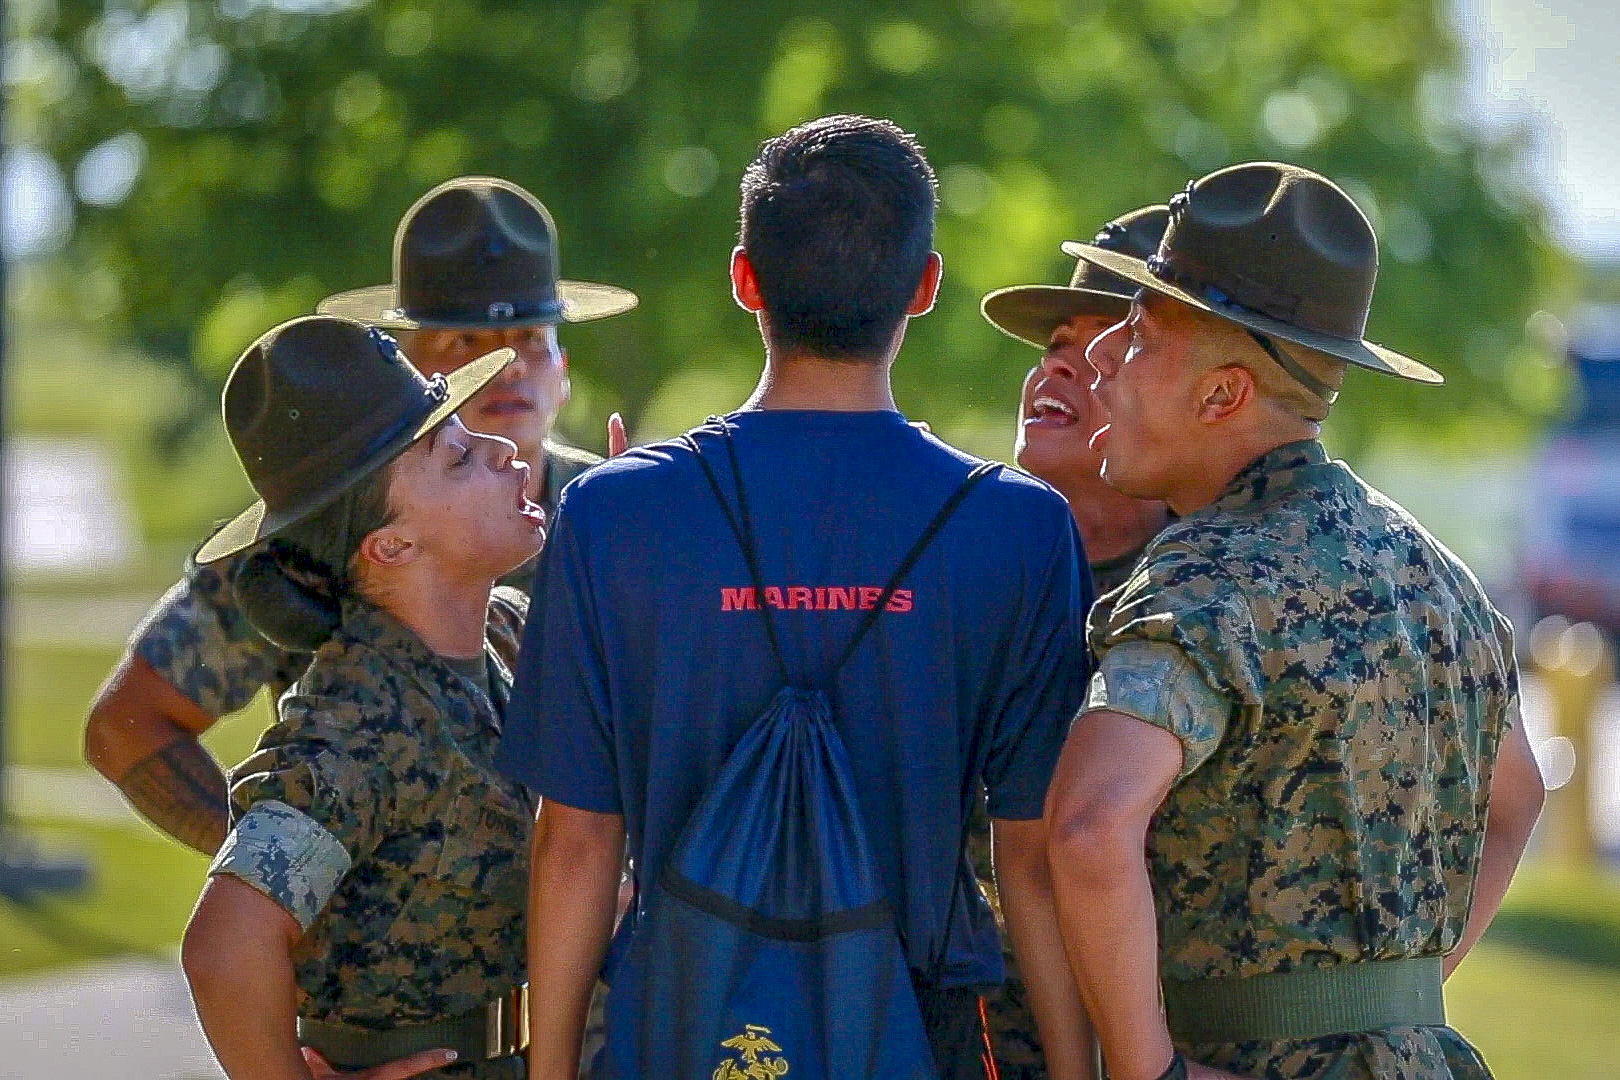 Future Marines from Marine Corps Recruiting Station Fort Worth got a taste of what Recruit Training will be like during the station's Annual Pool Function, April 27-28, 2019. (Sgt. Danielle Rodrigues/Marines)